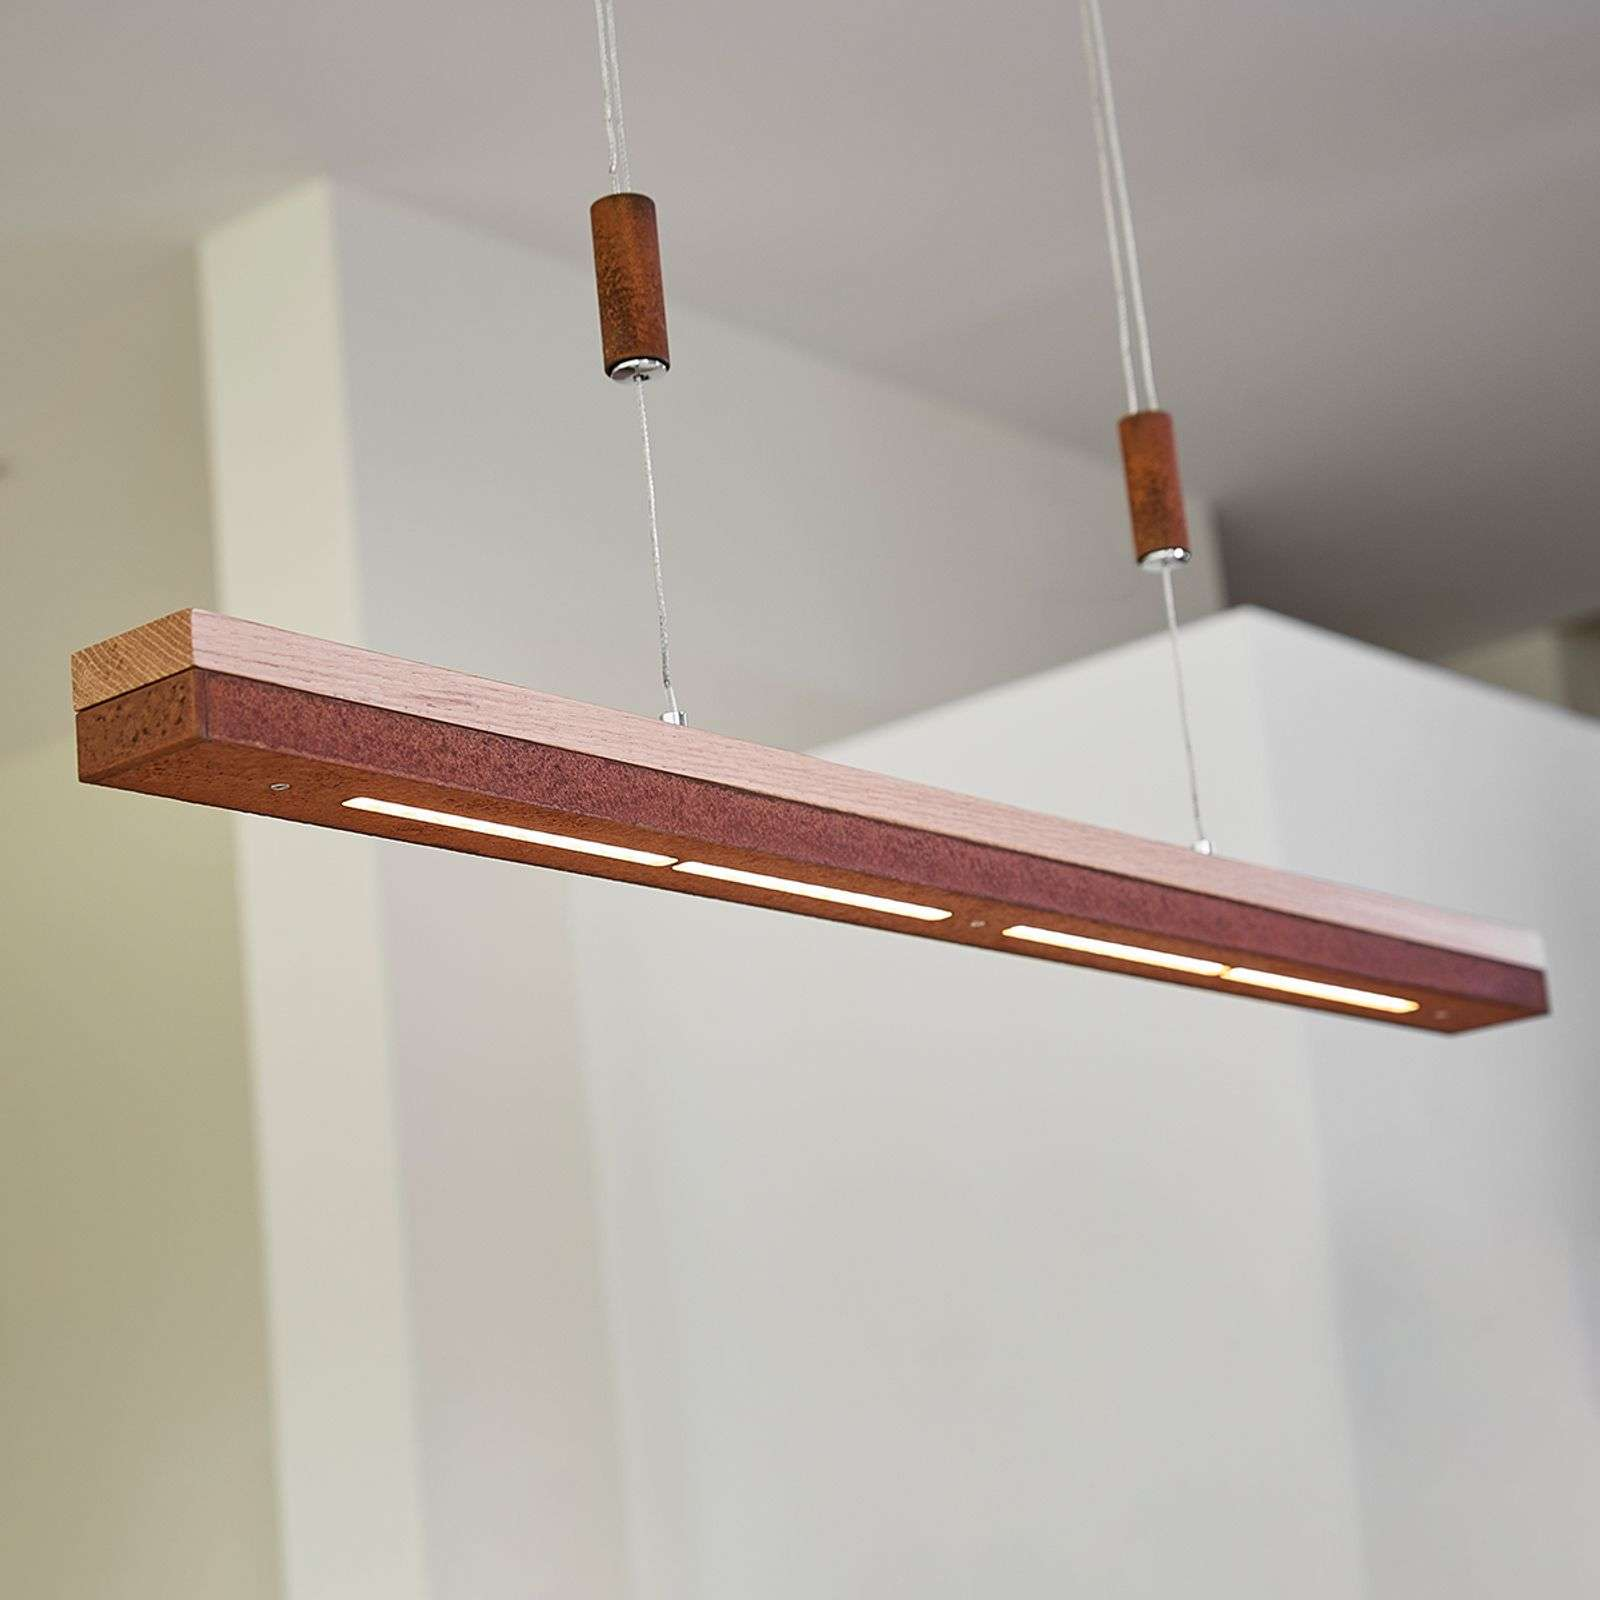 Suspension LED Elna en rouille et bois, 78 cm